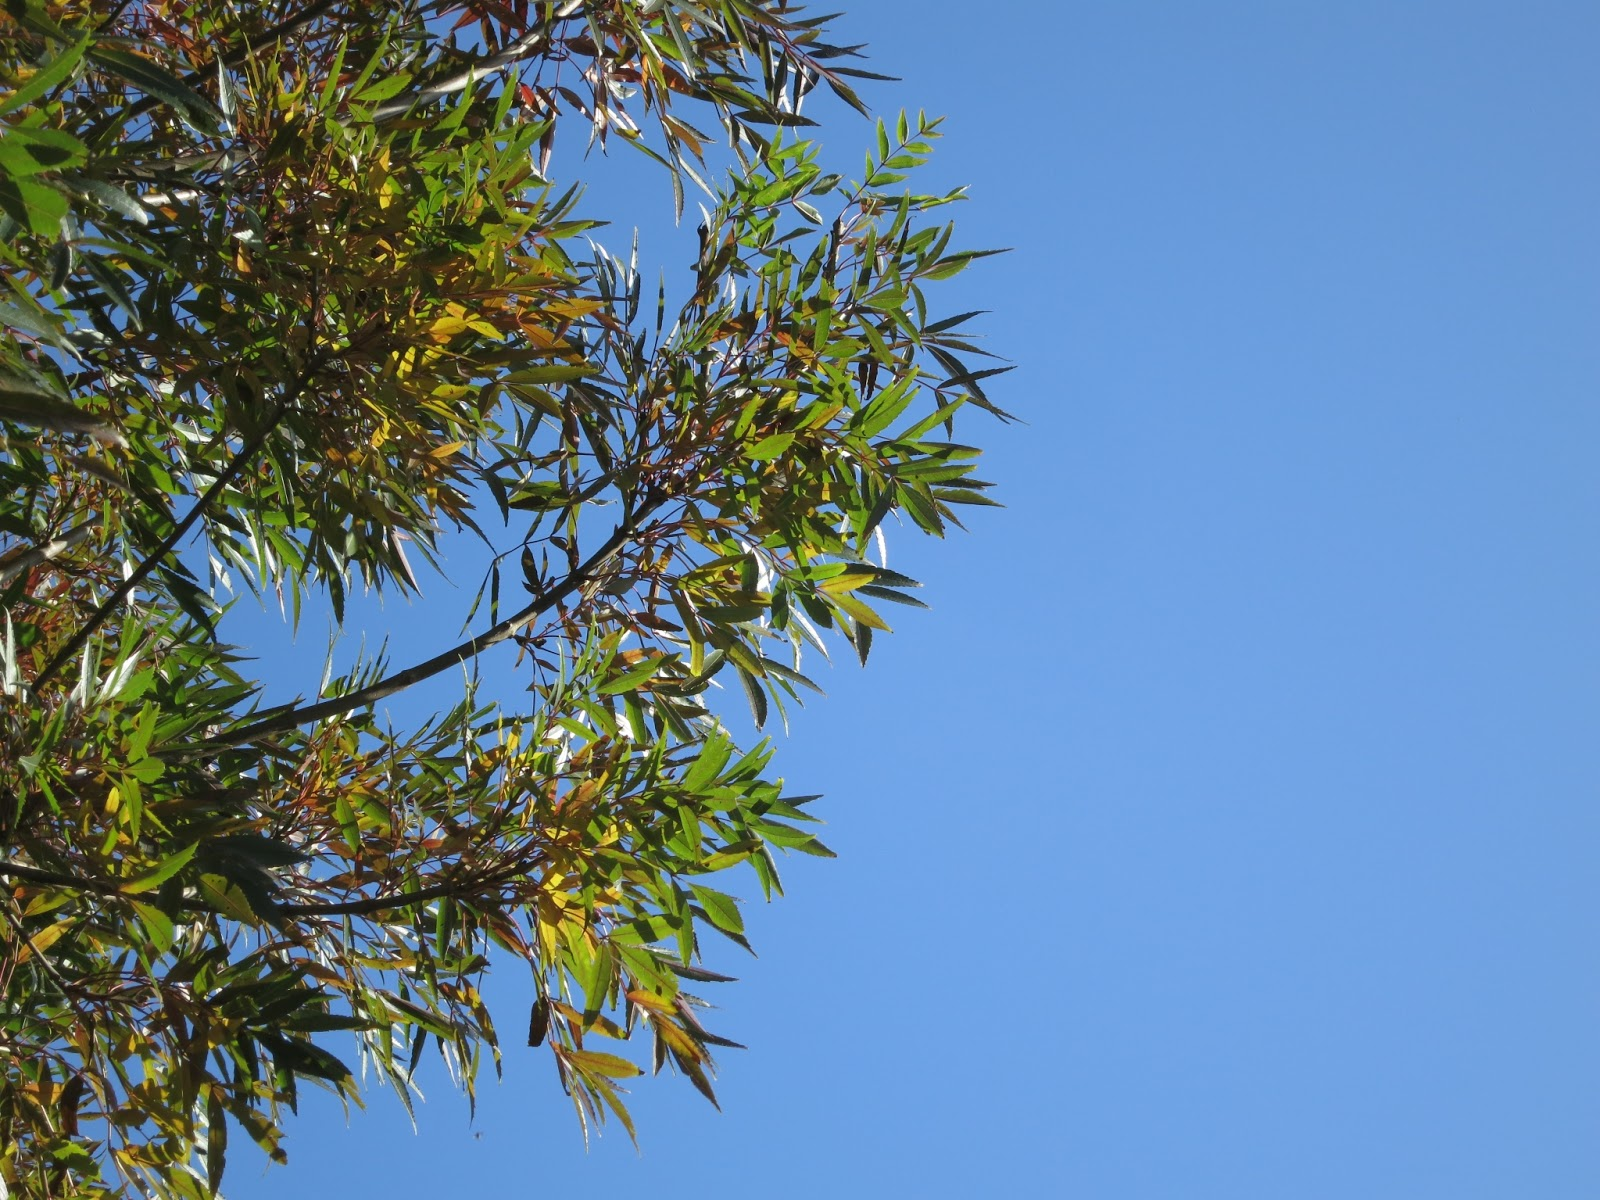 Leaves of an ash tree changing colour for autumn against a blue sky